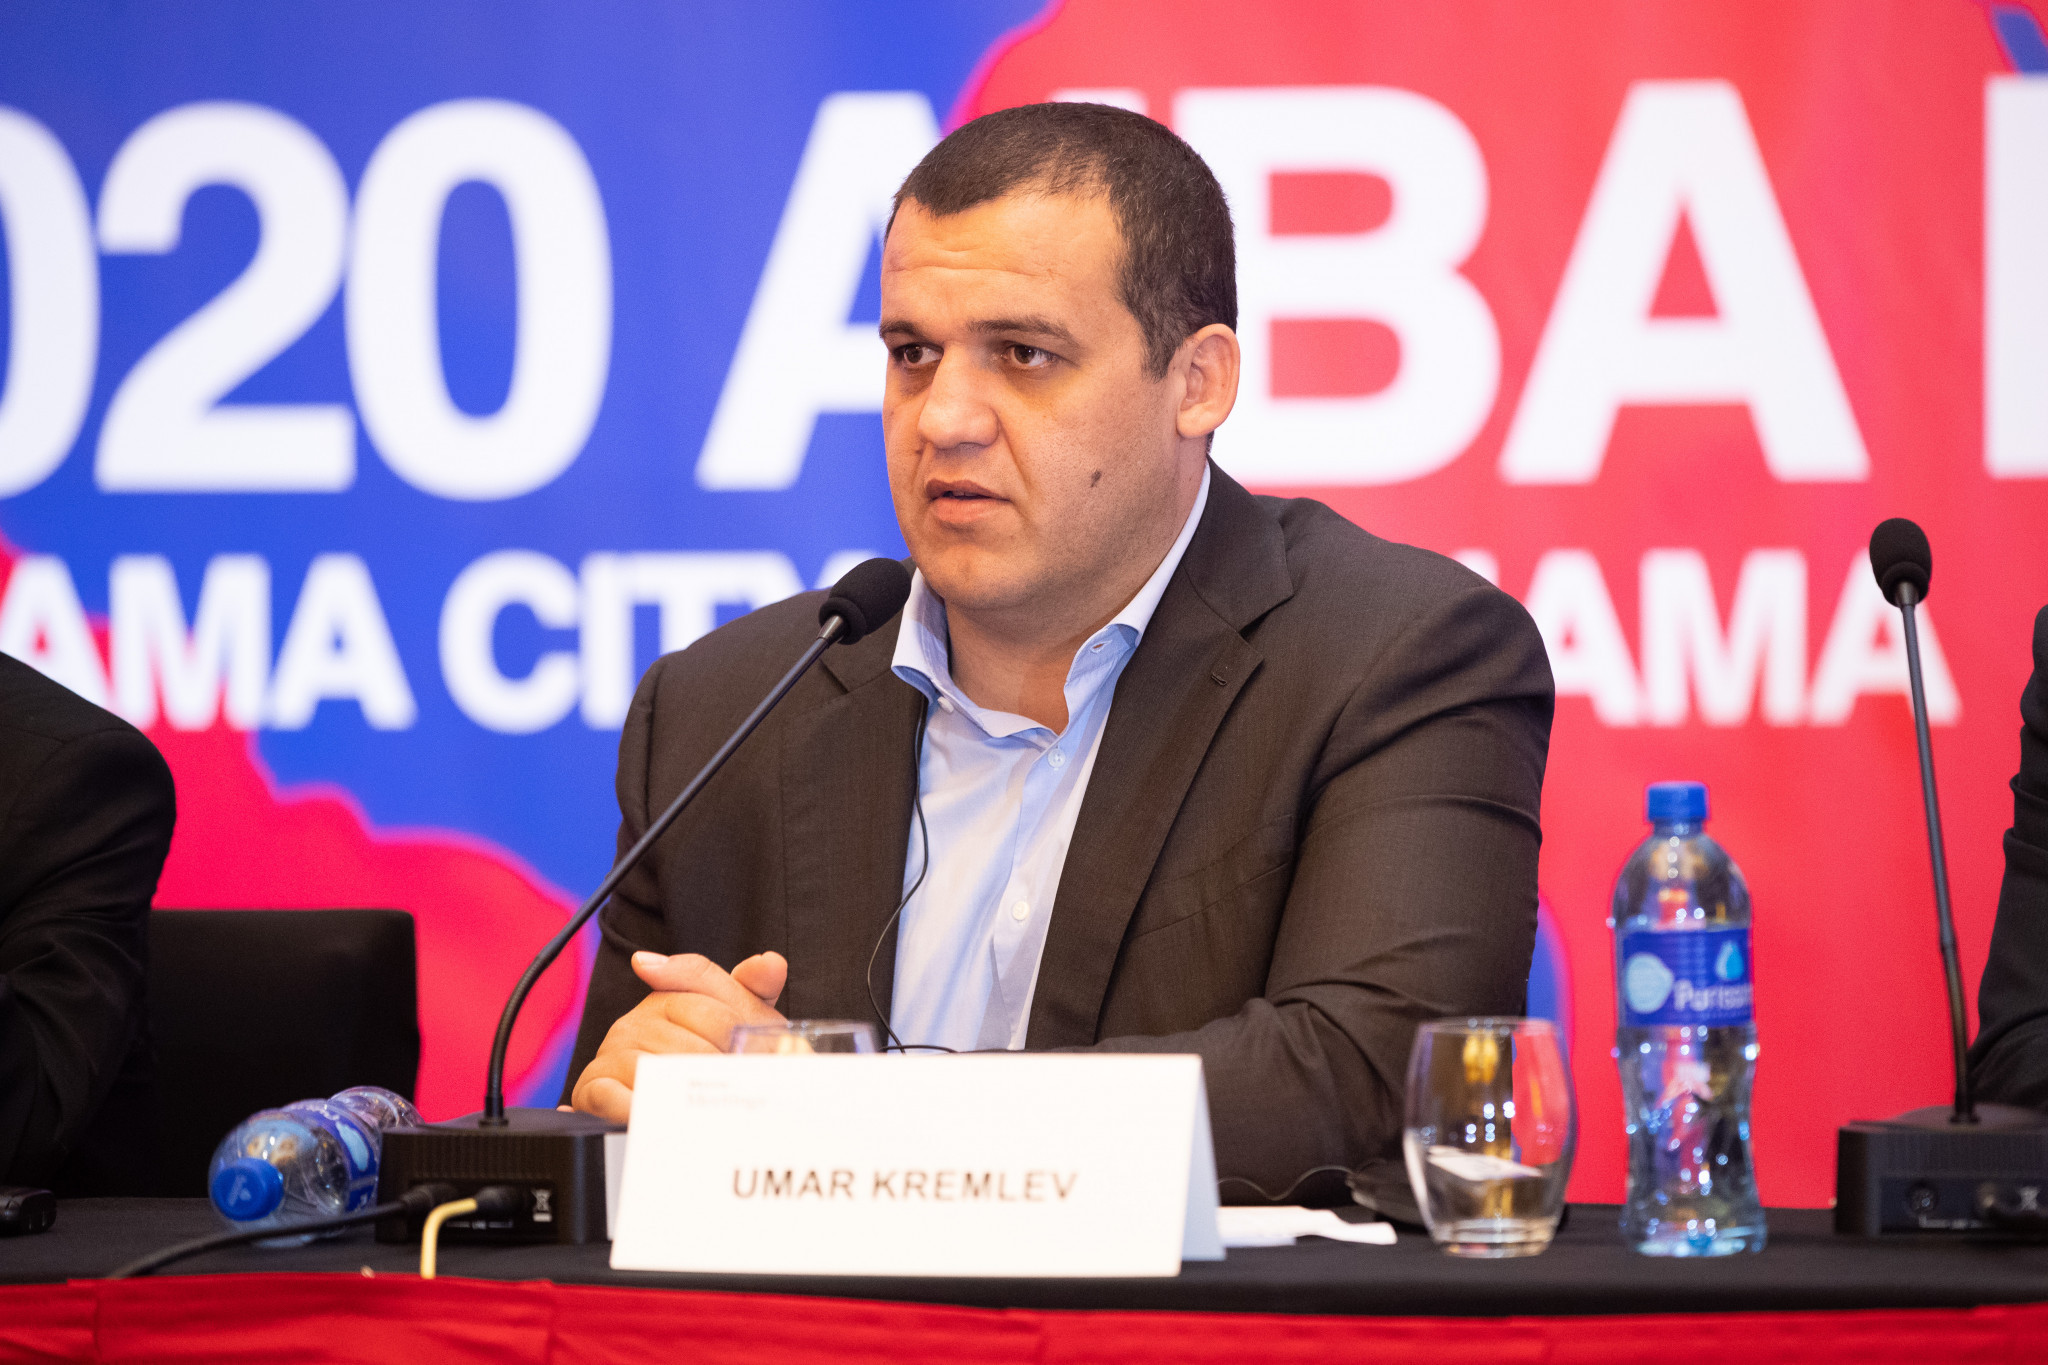 Umar Kremlev was elected AIBA President in December 2020 ©AIBA